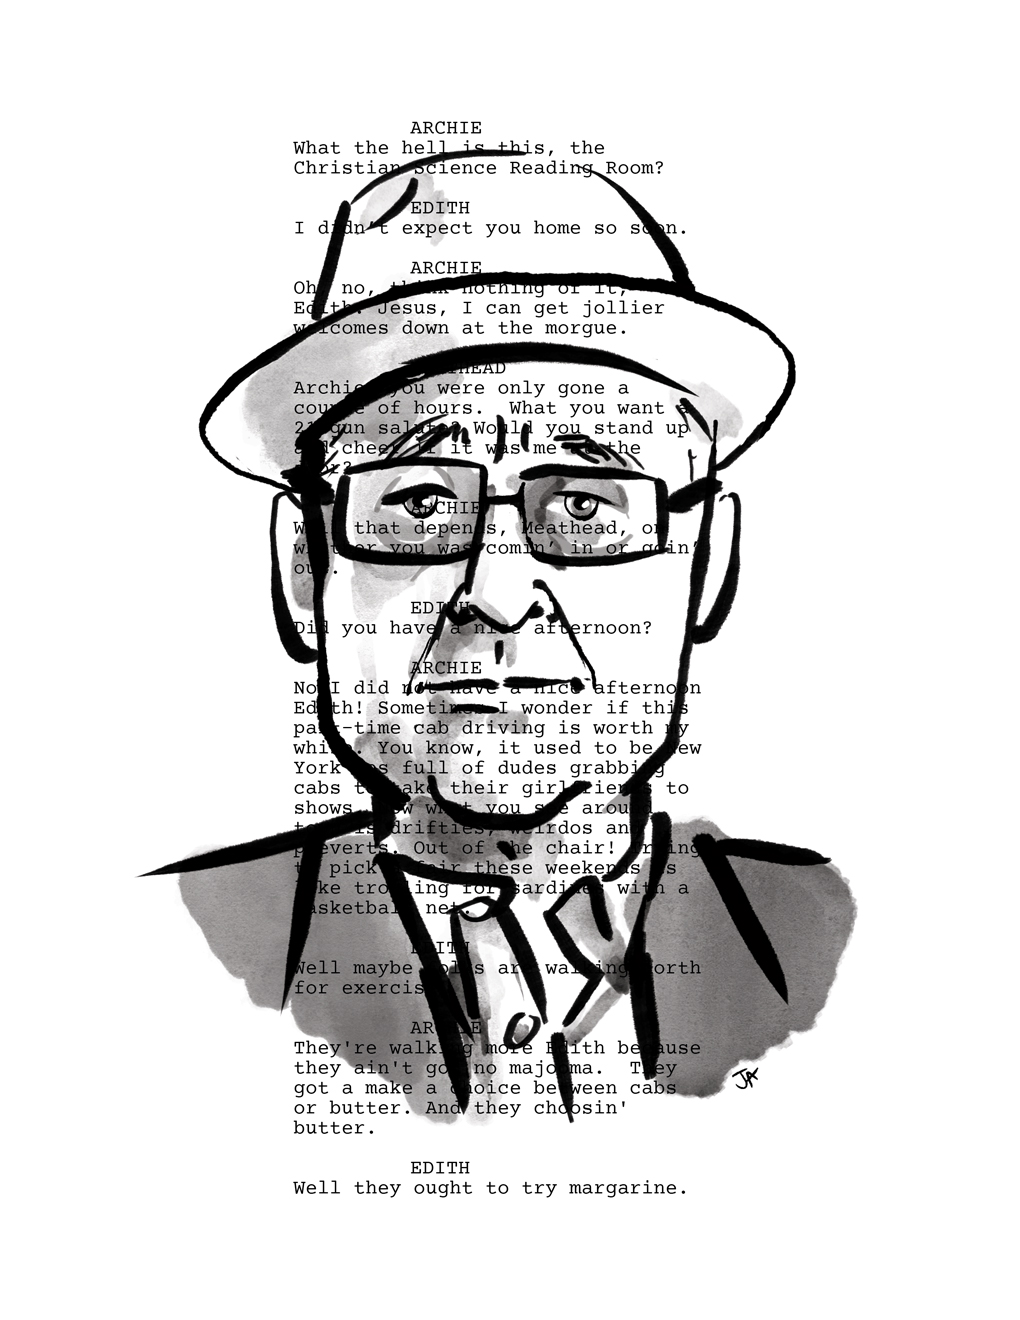 Norman Lear / All in the Family